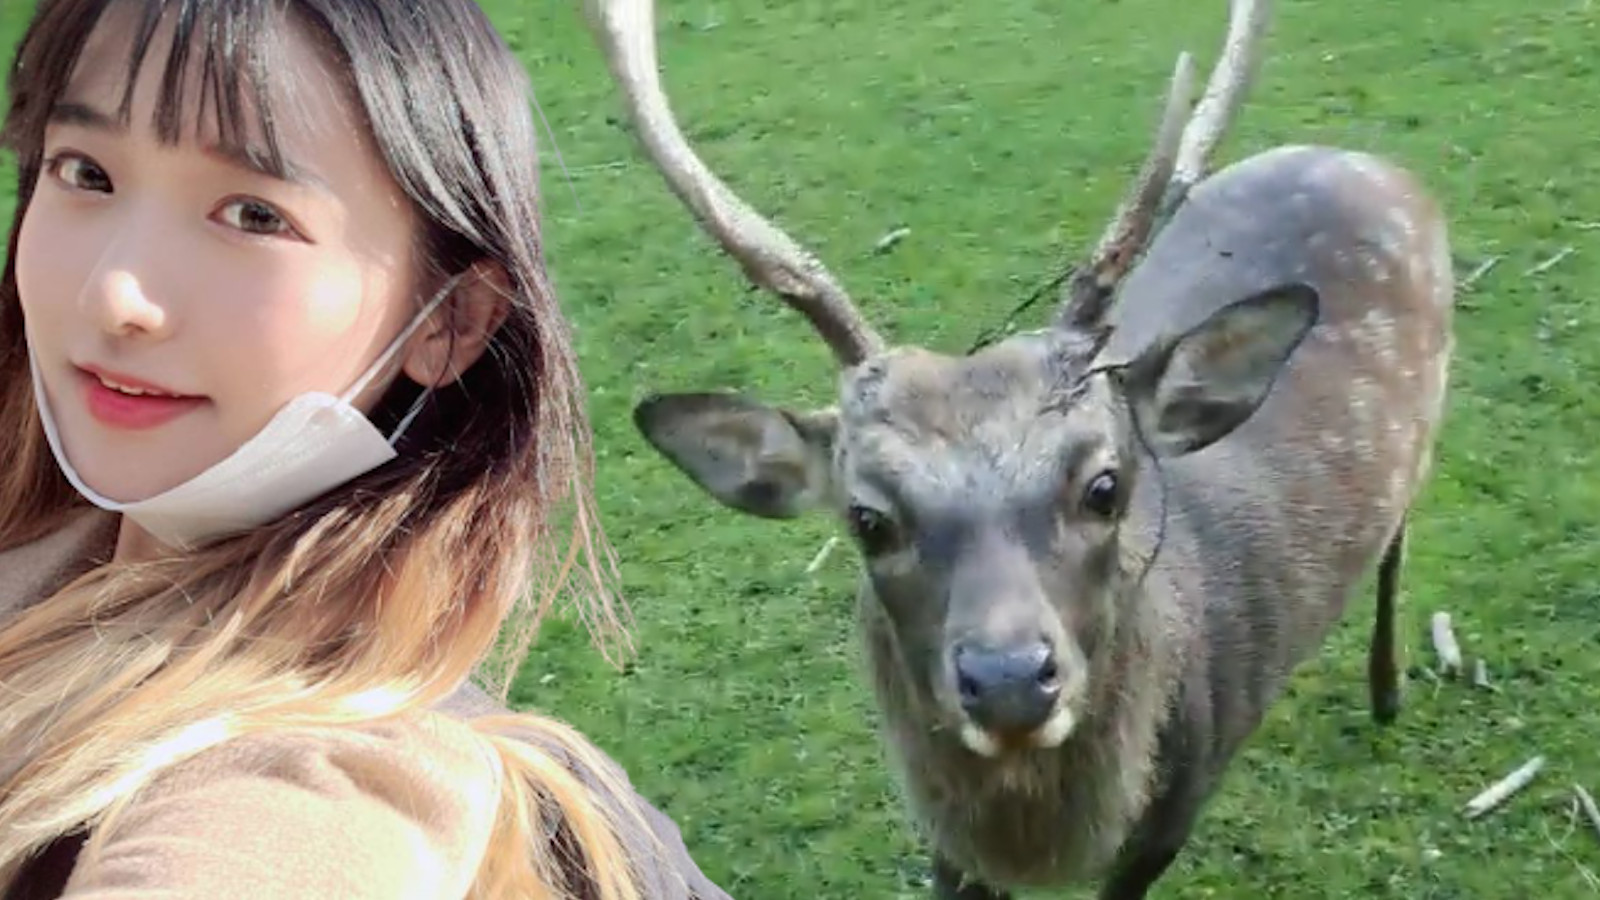 Jinny attacked by deer